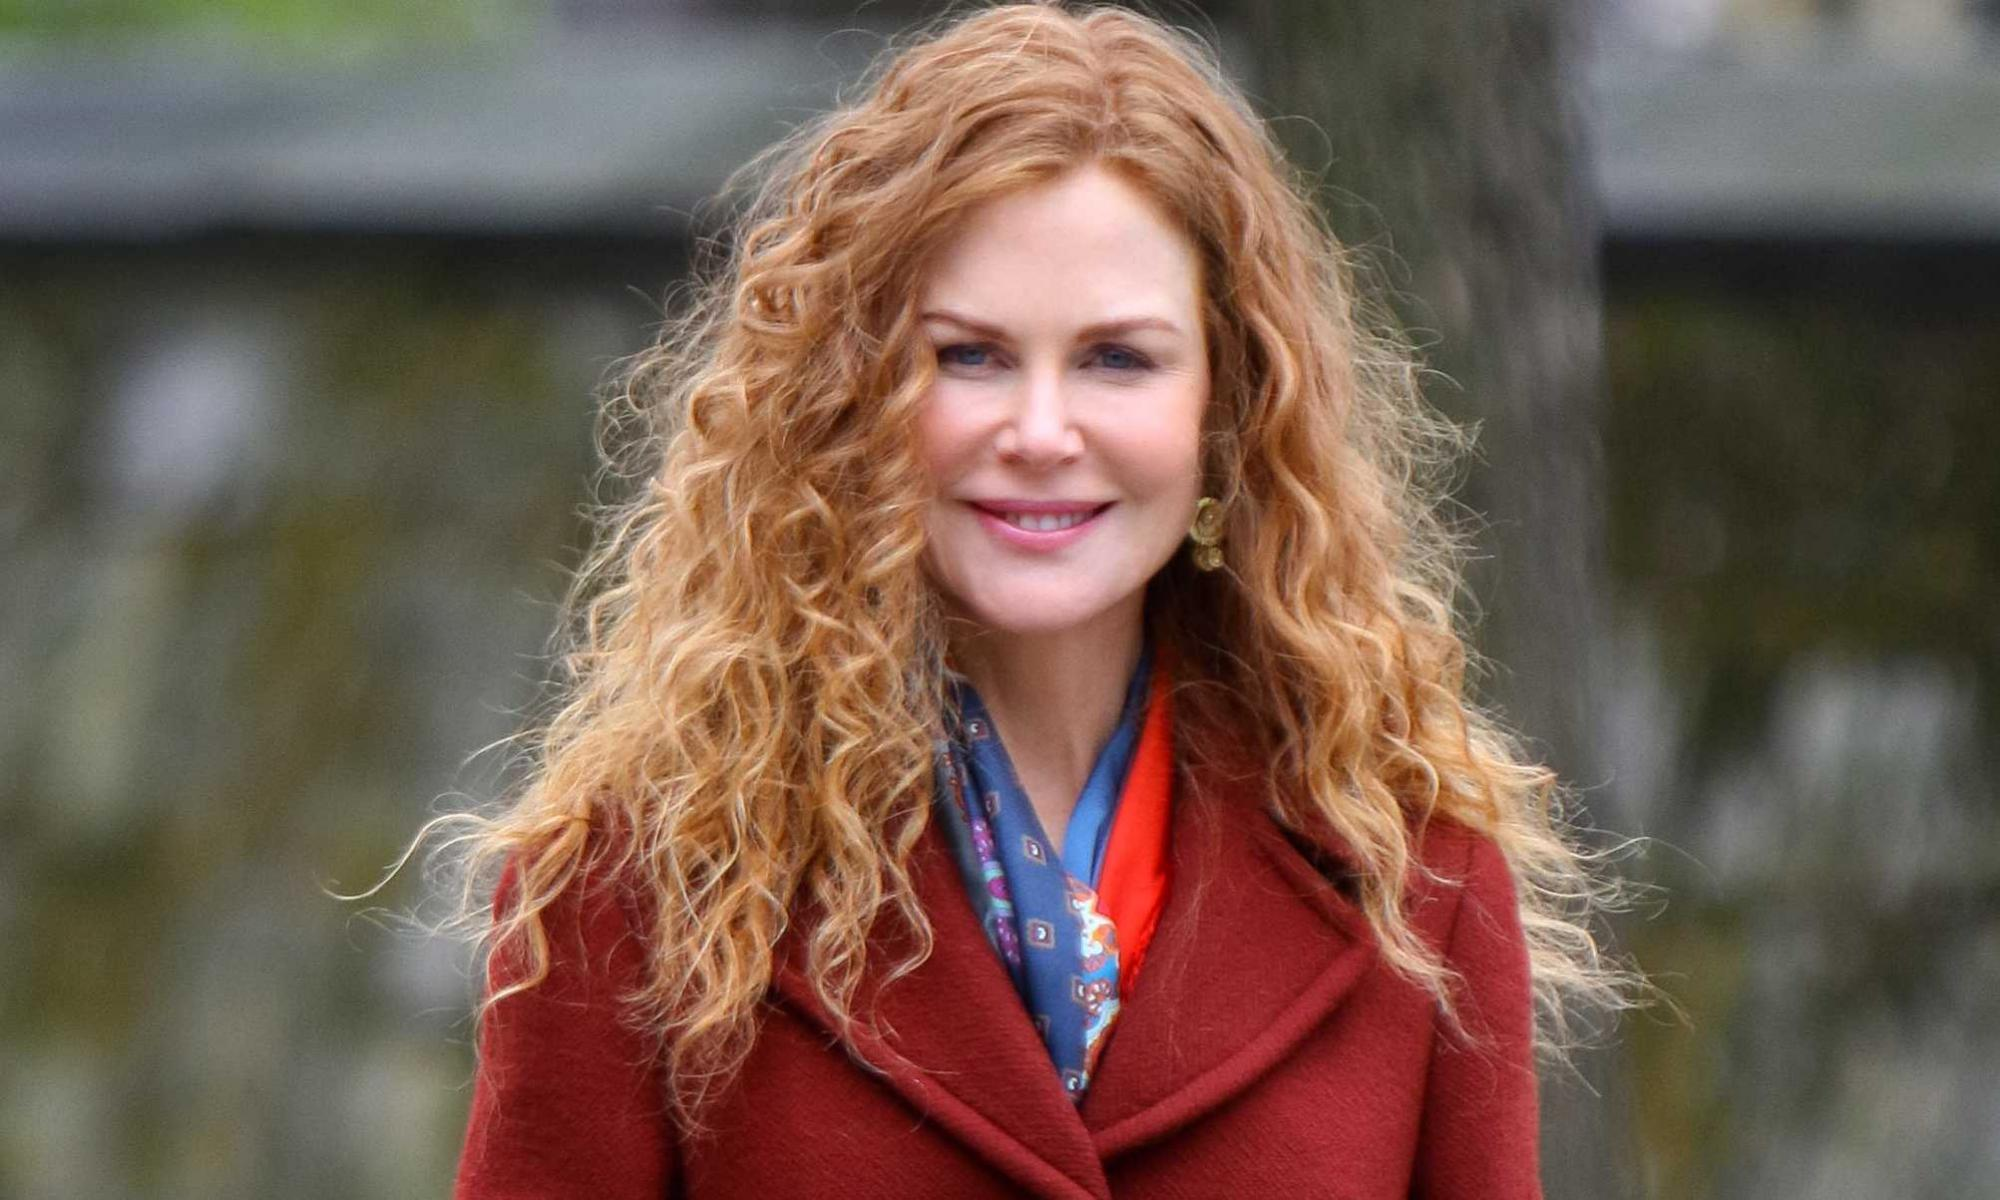 Nicole Kidman is thrilled to share massive news after 'journey of a lifetime'